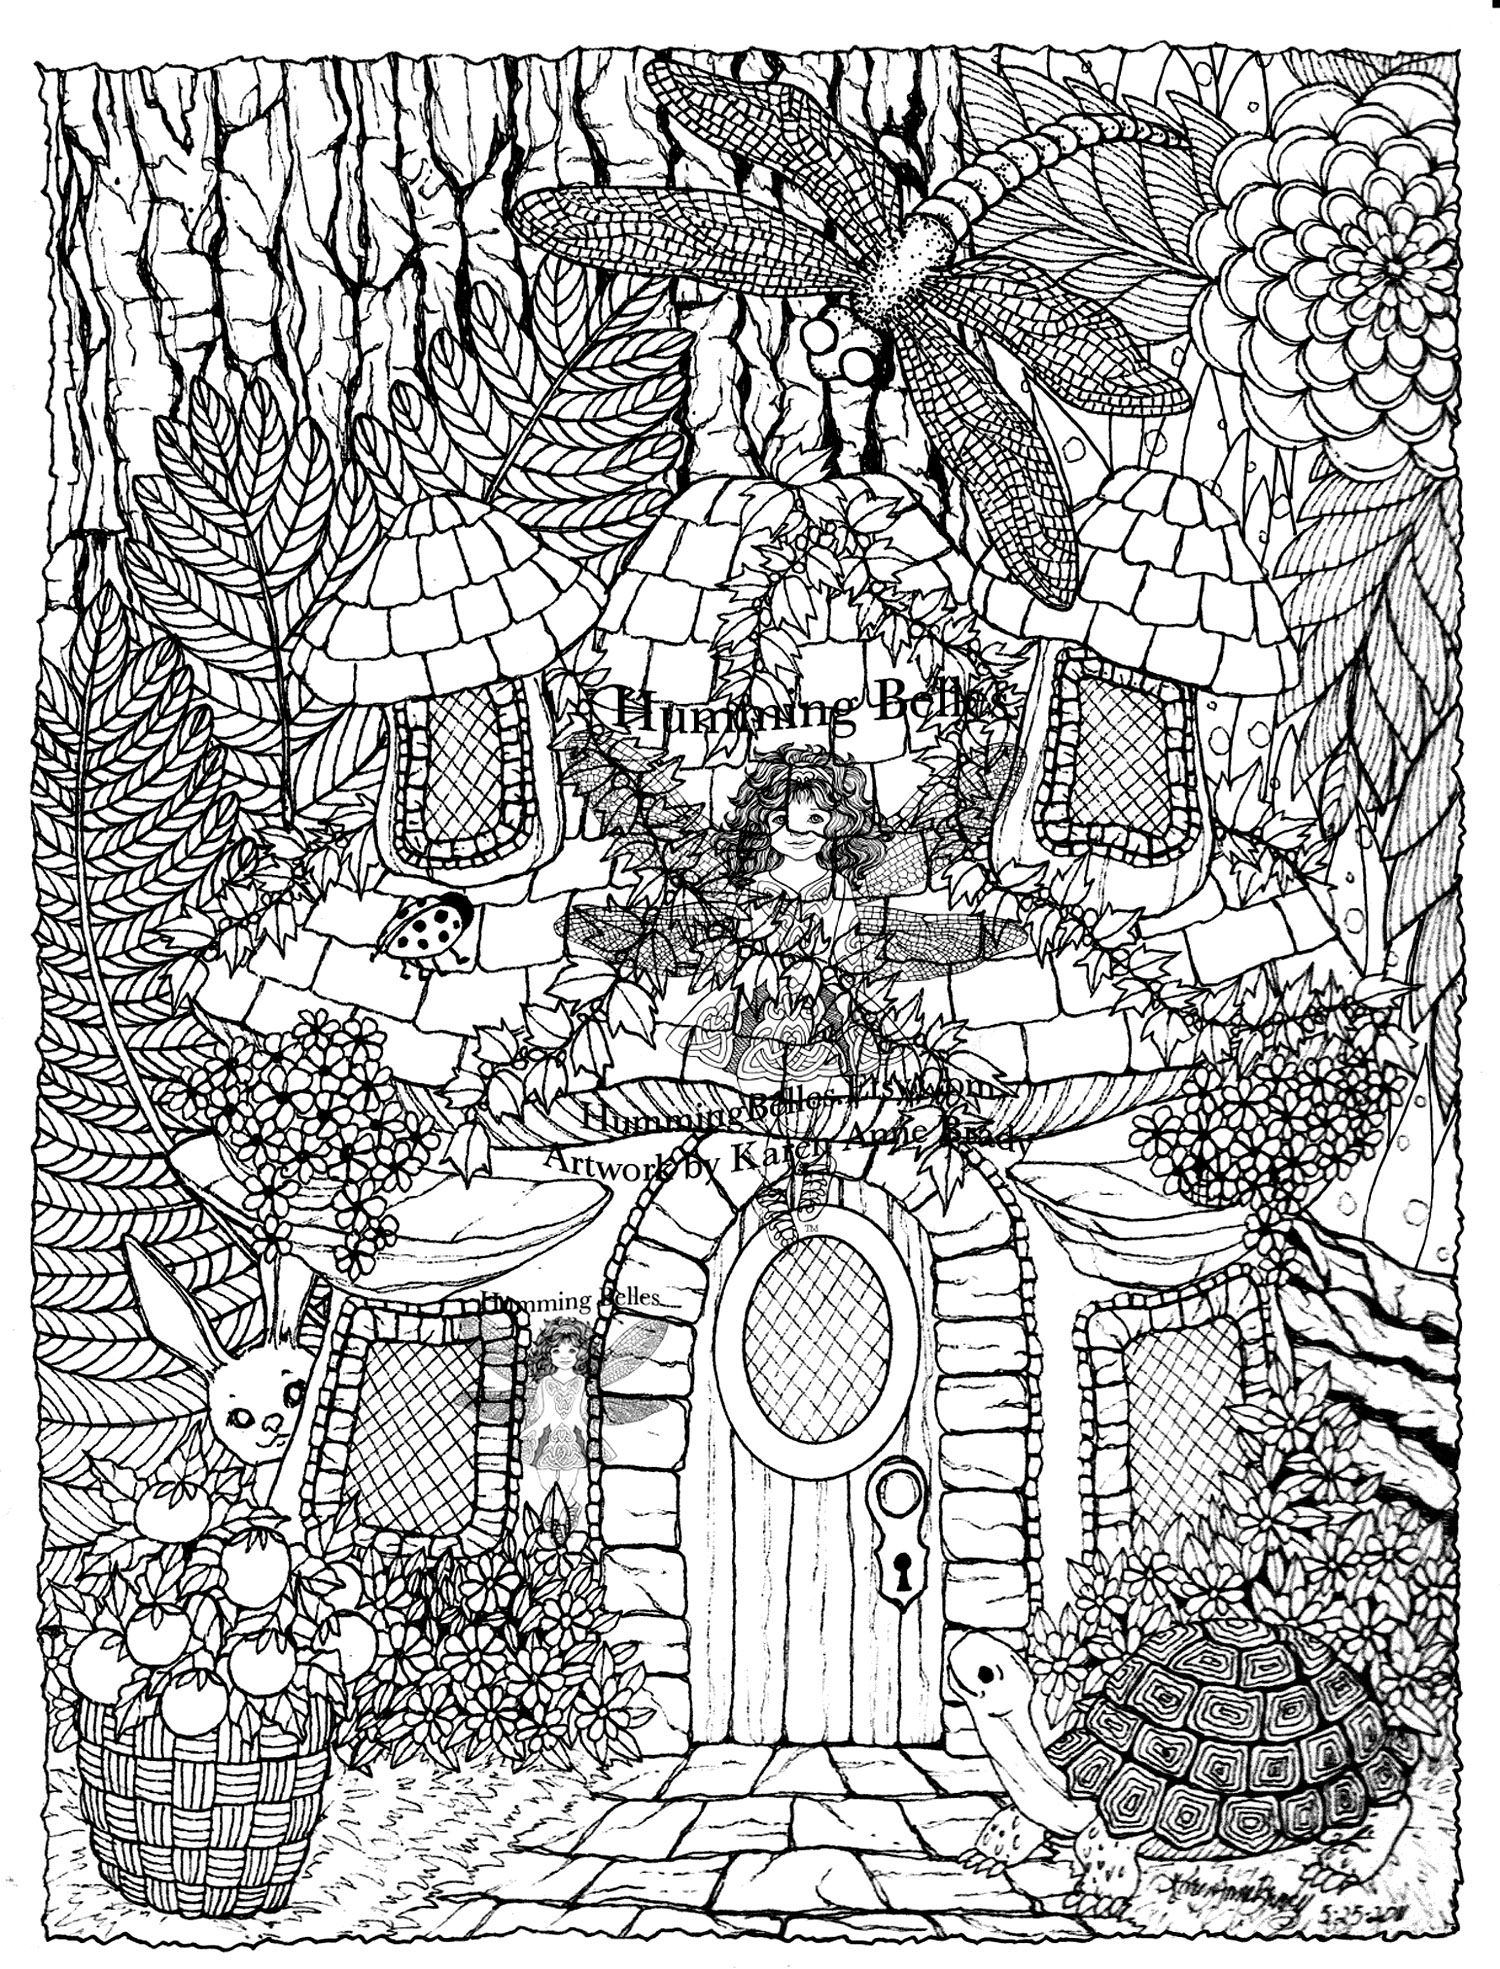 Hidden Animals In A Magnificient Drawing To Color From The Gallery Turtles Detailed Coloring Pages Coloring Pages Nature Animal Coloring Pages